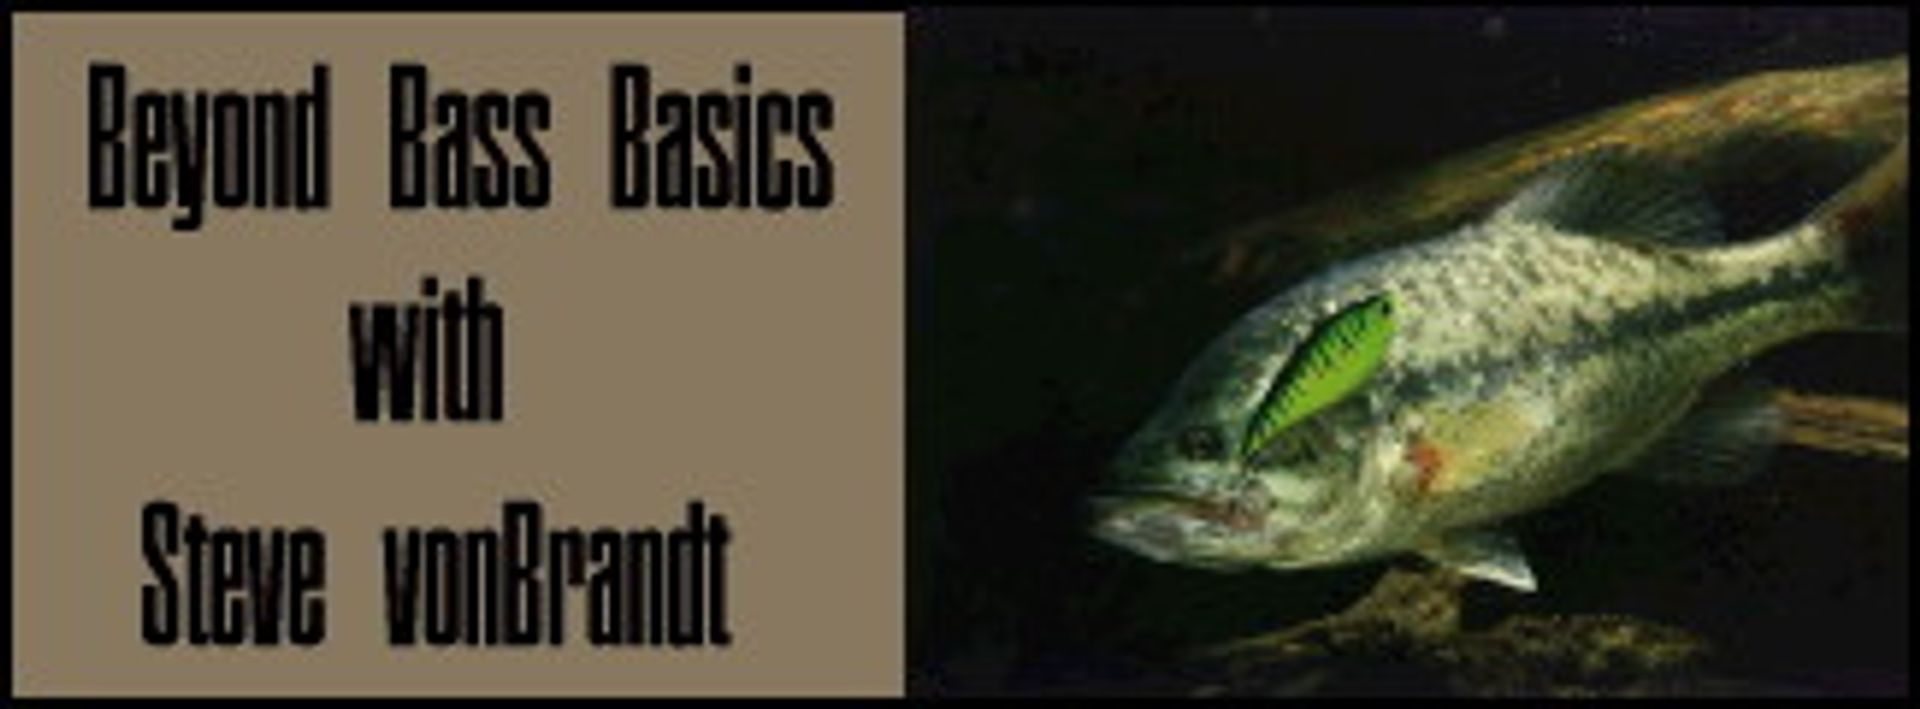 FLW Bass fishing, bass fishing articles